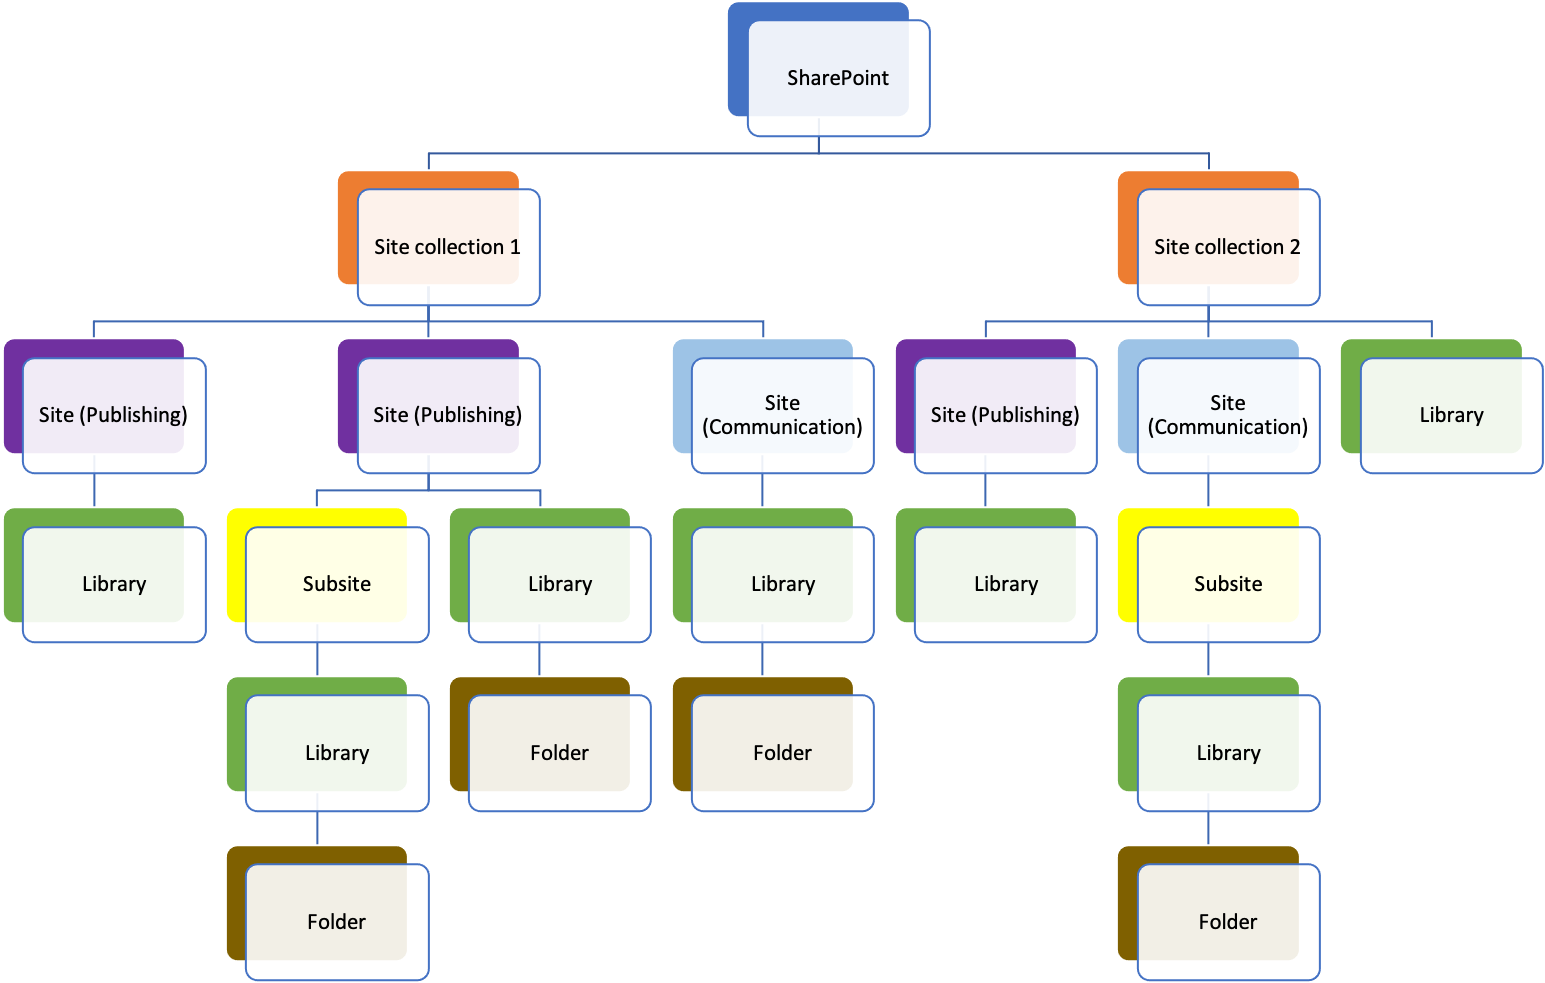 SharePoint data structure and hierarchy